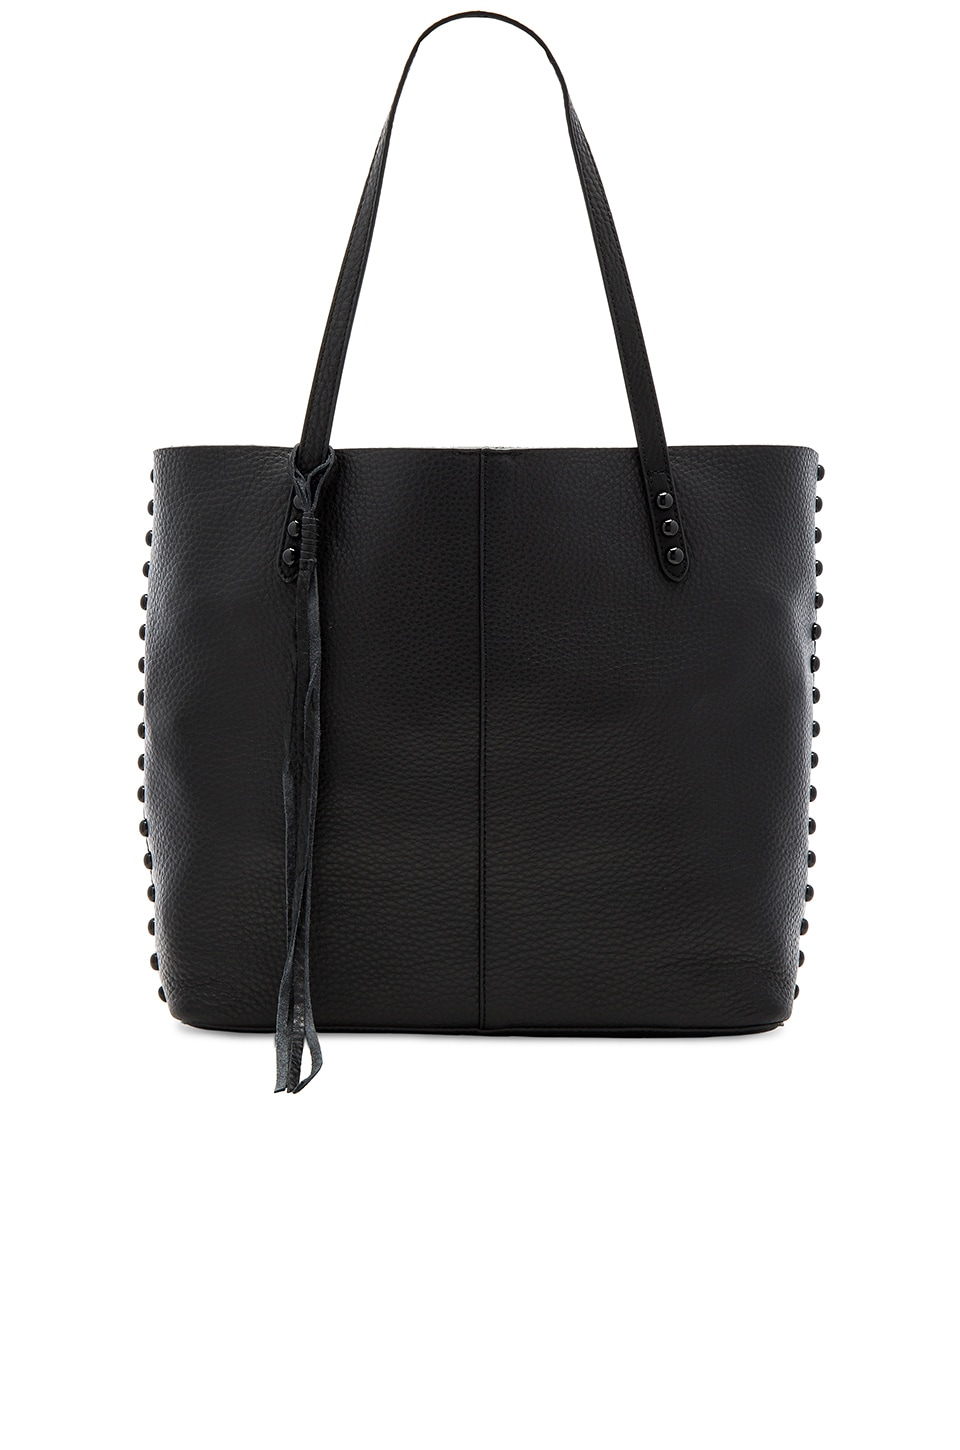 Rebecca Minkoff Medium Unlined Tote in Black